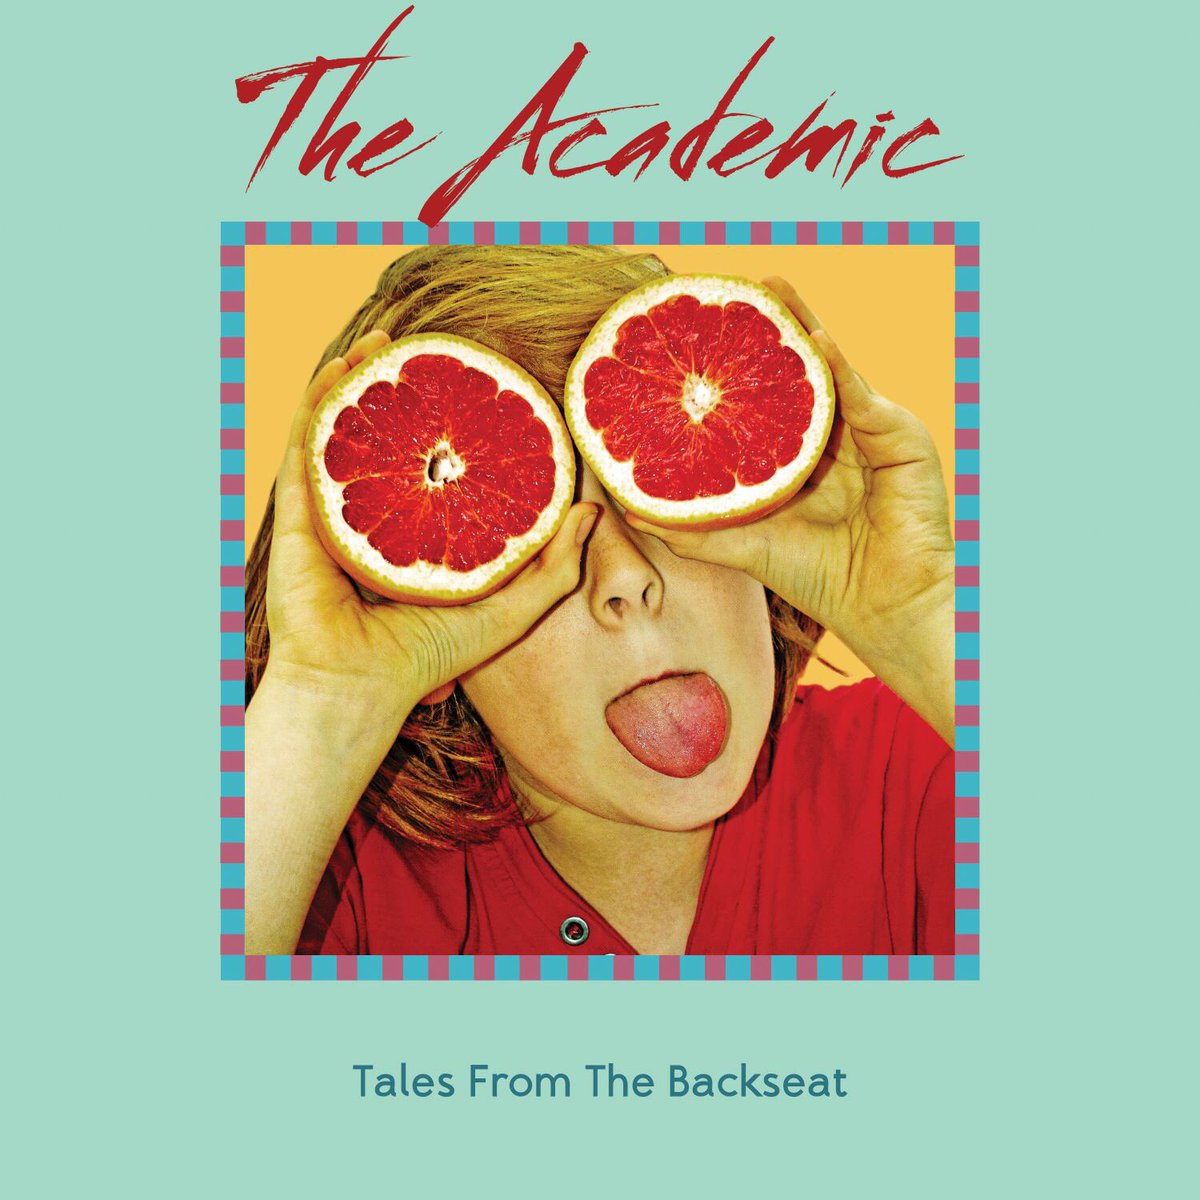 review of 'Tales From The Backseat' by The Academic